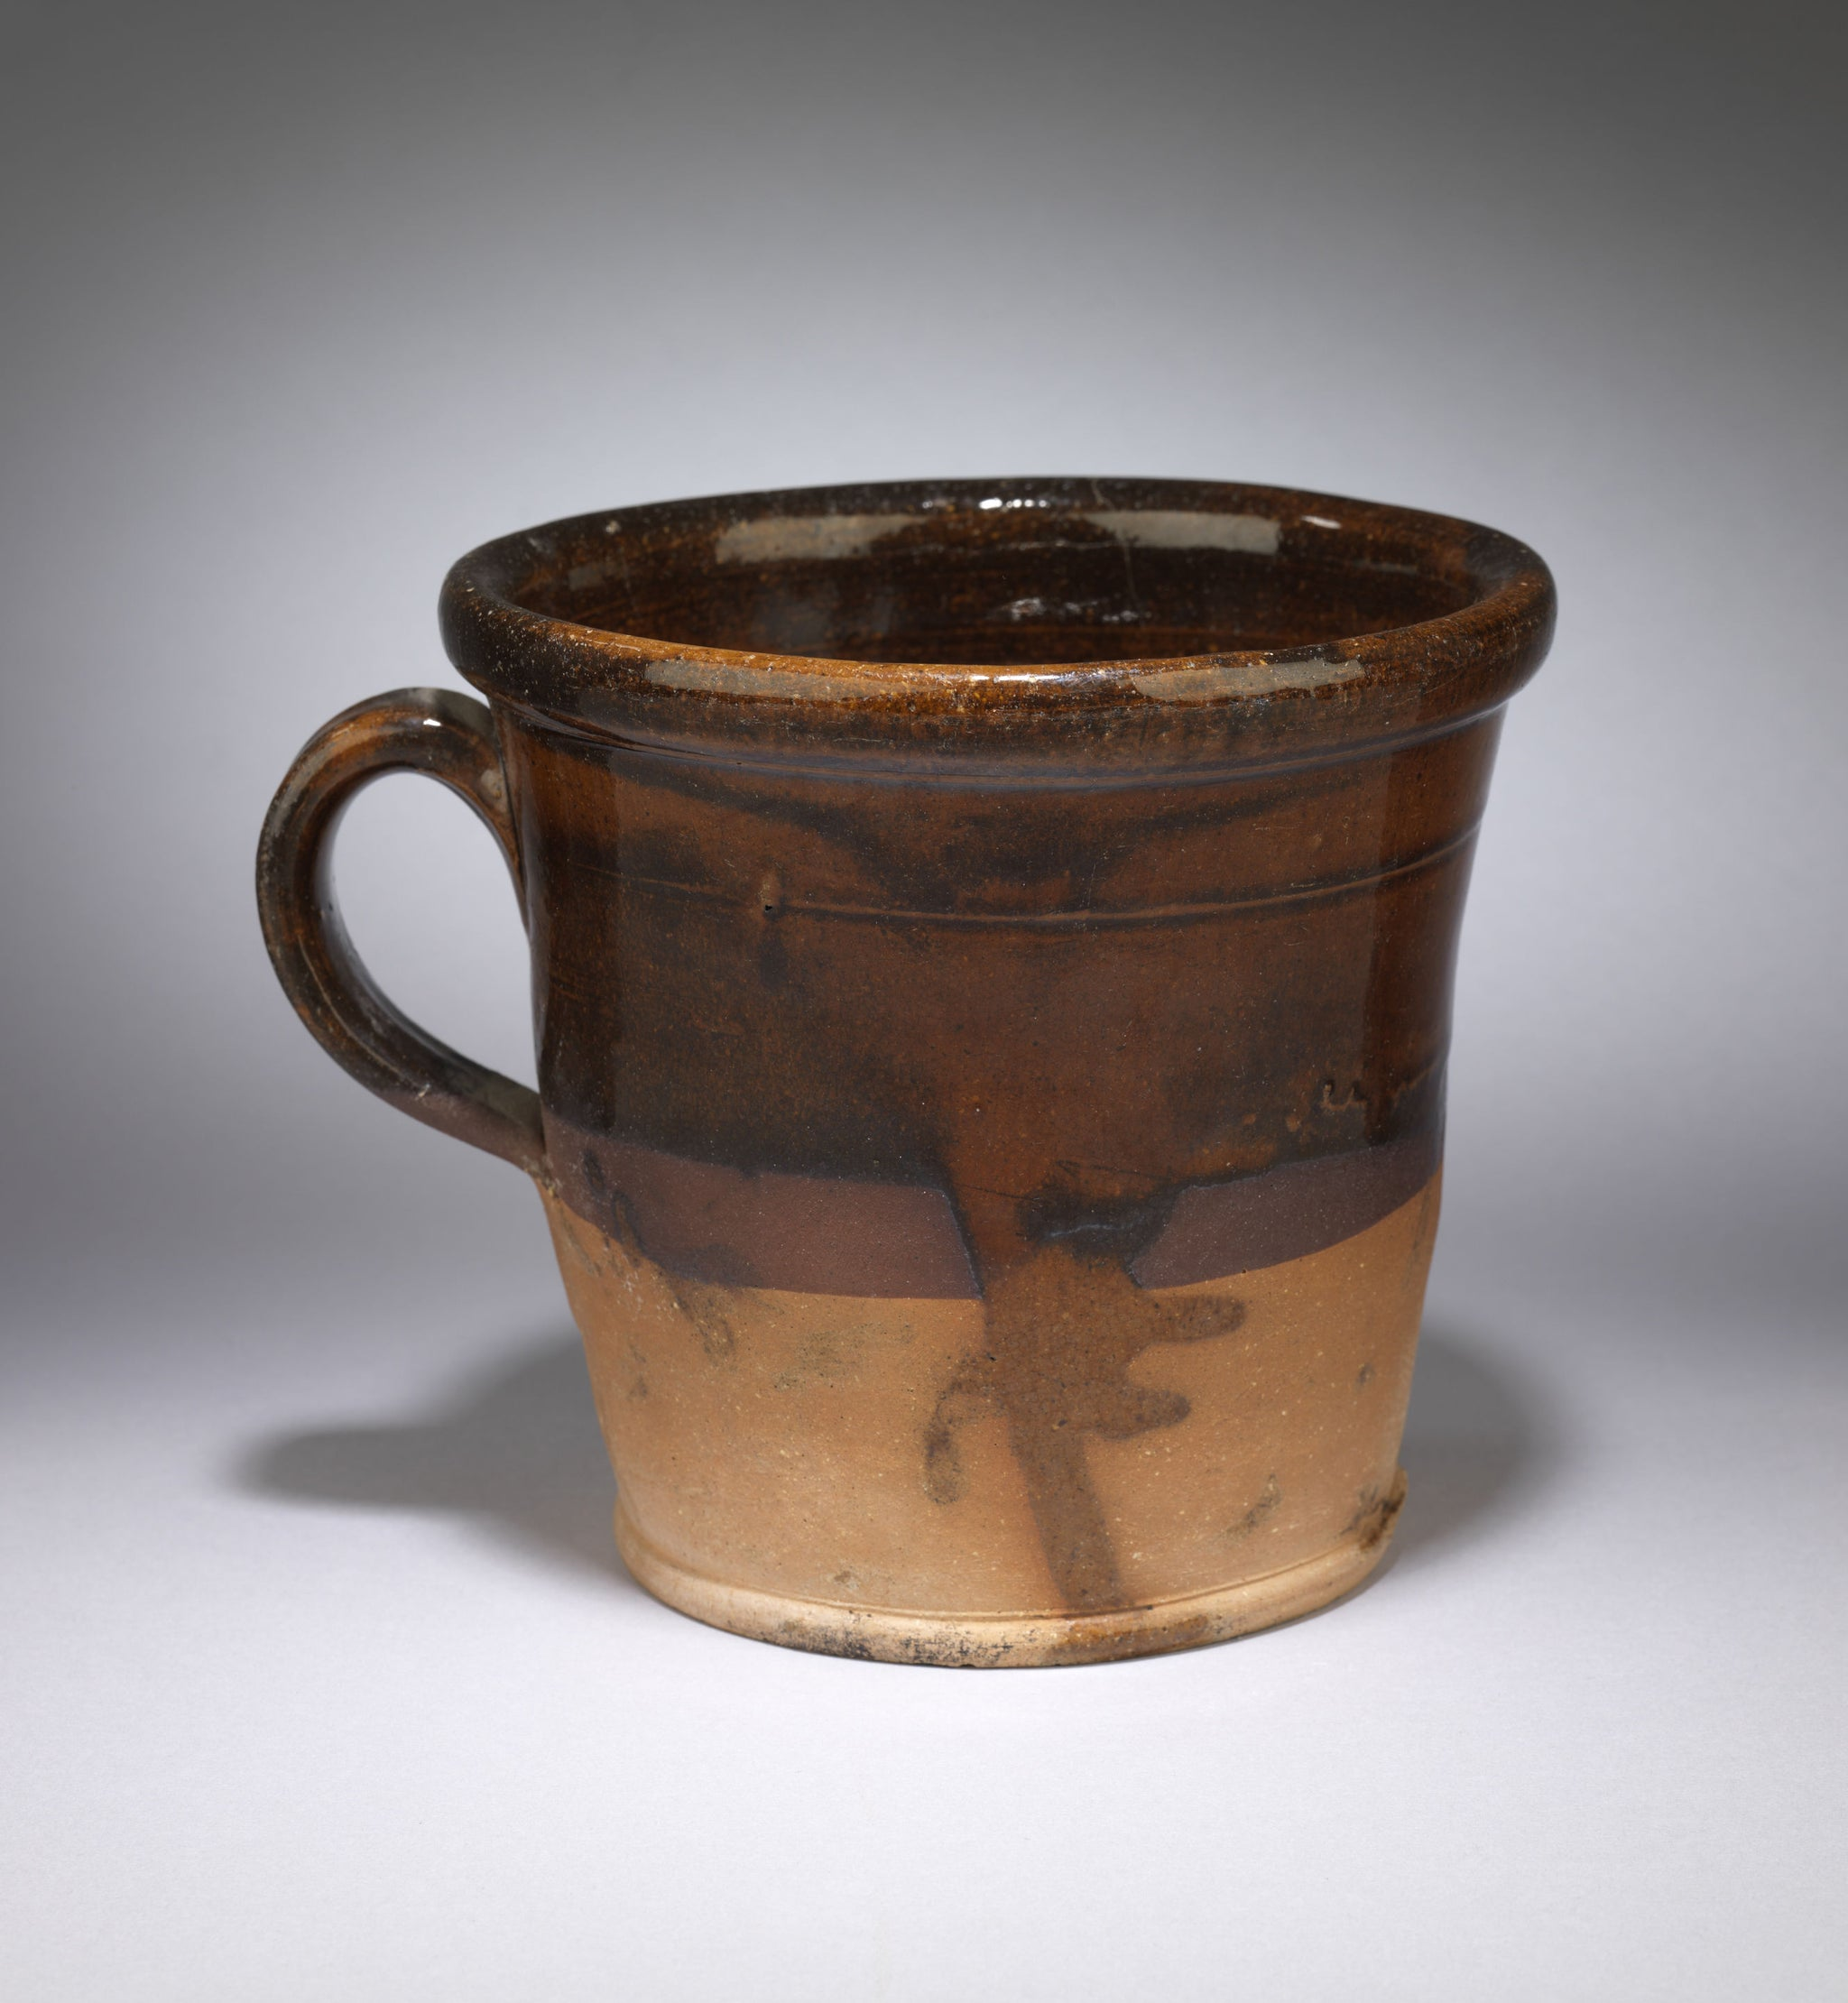 A Loop Handled Slipware Crock